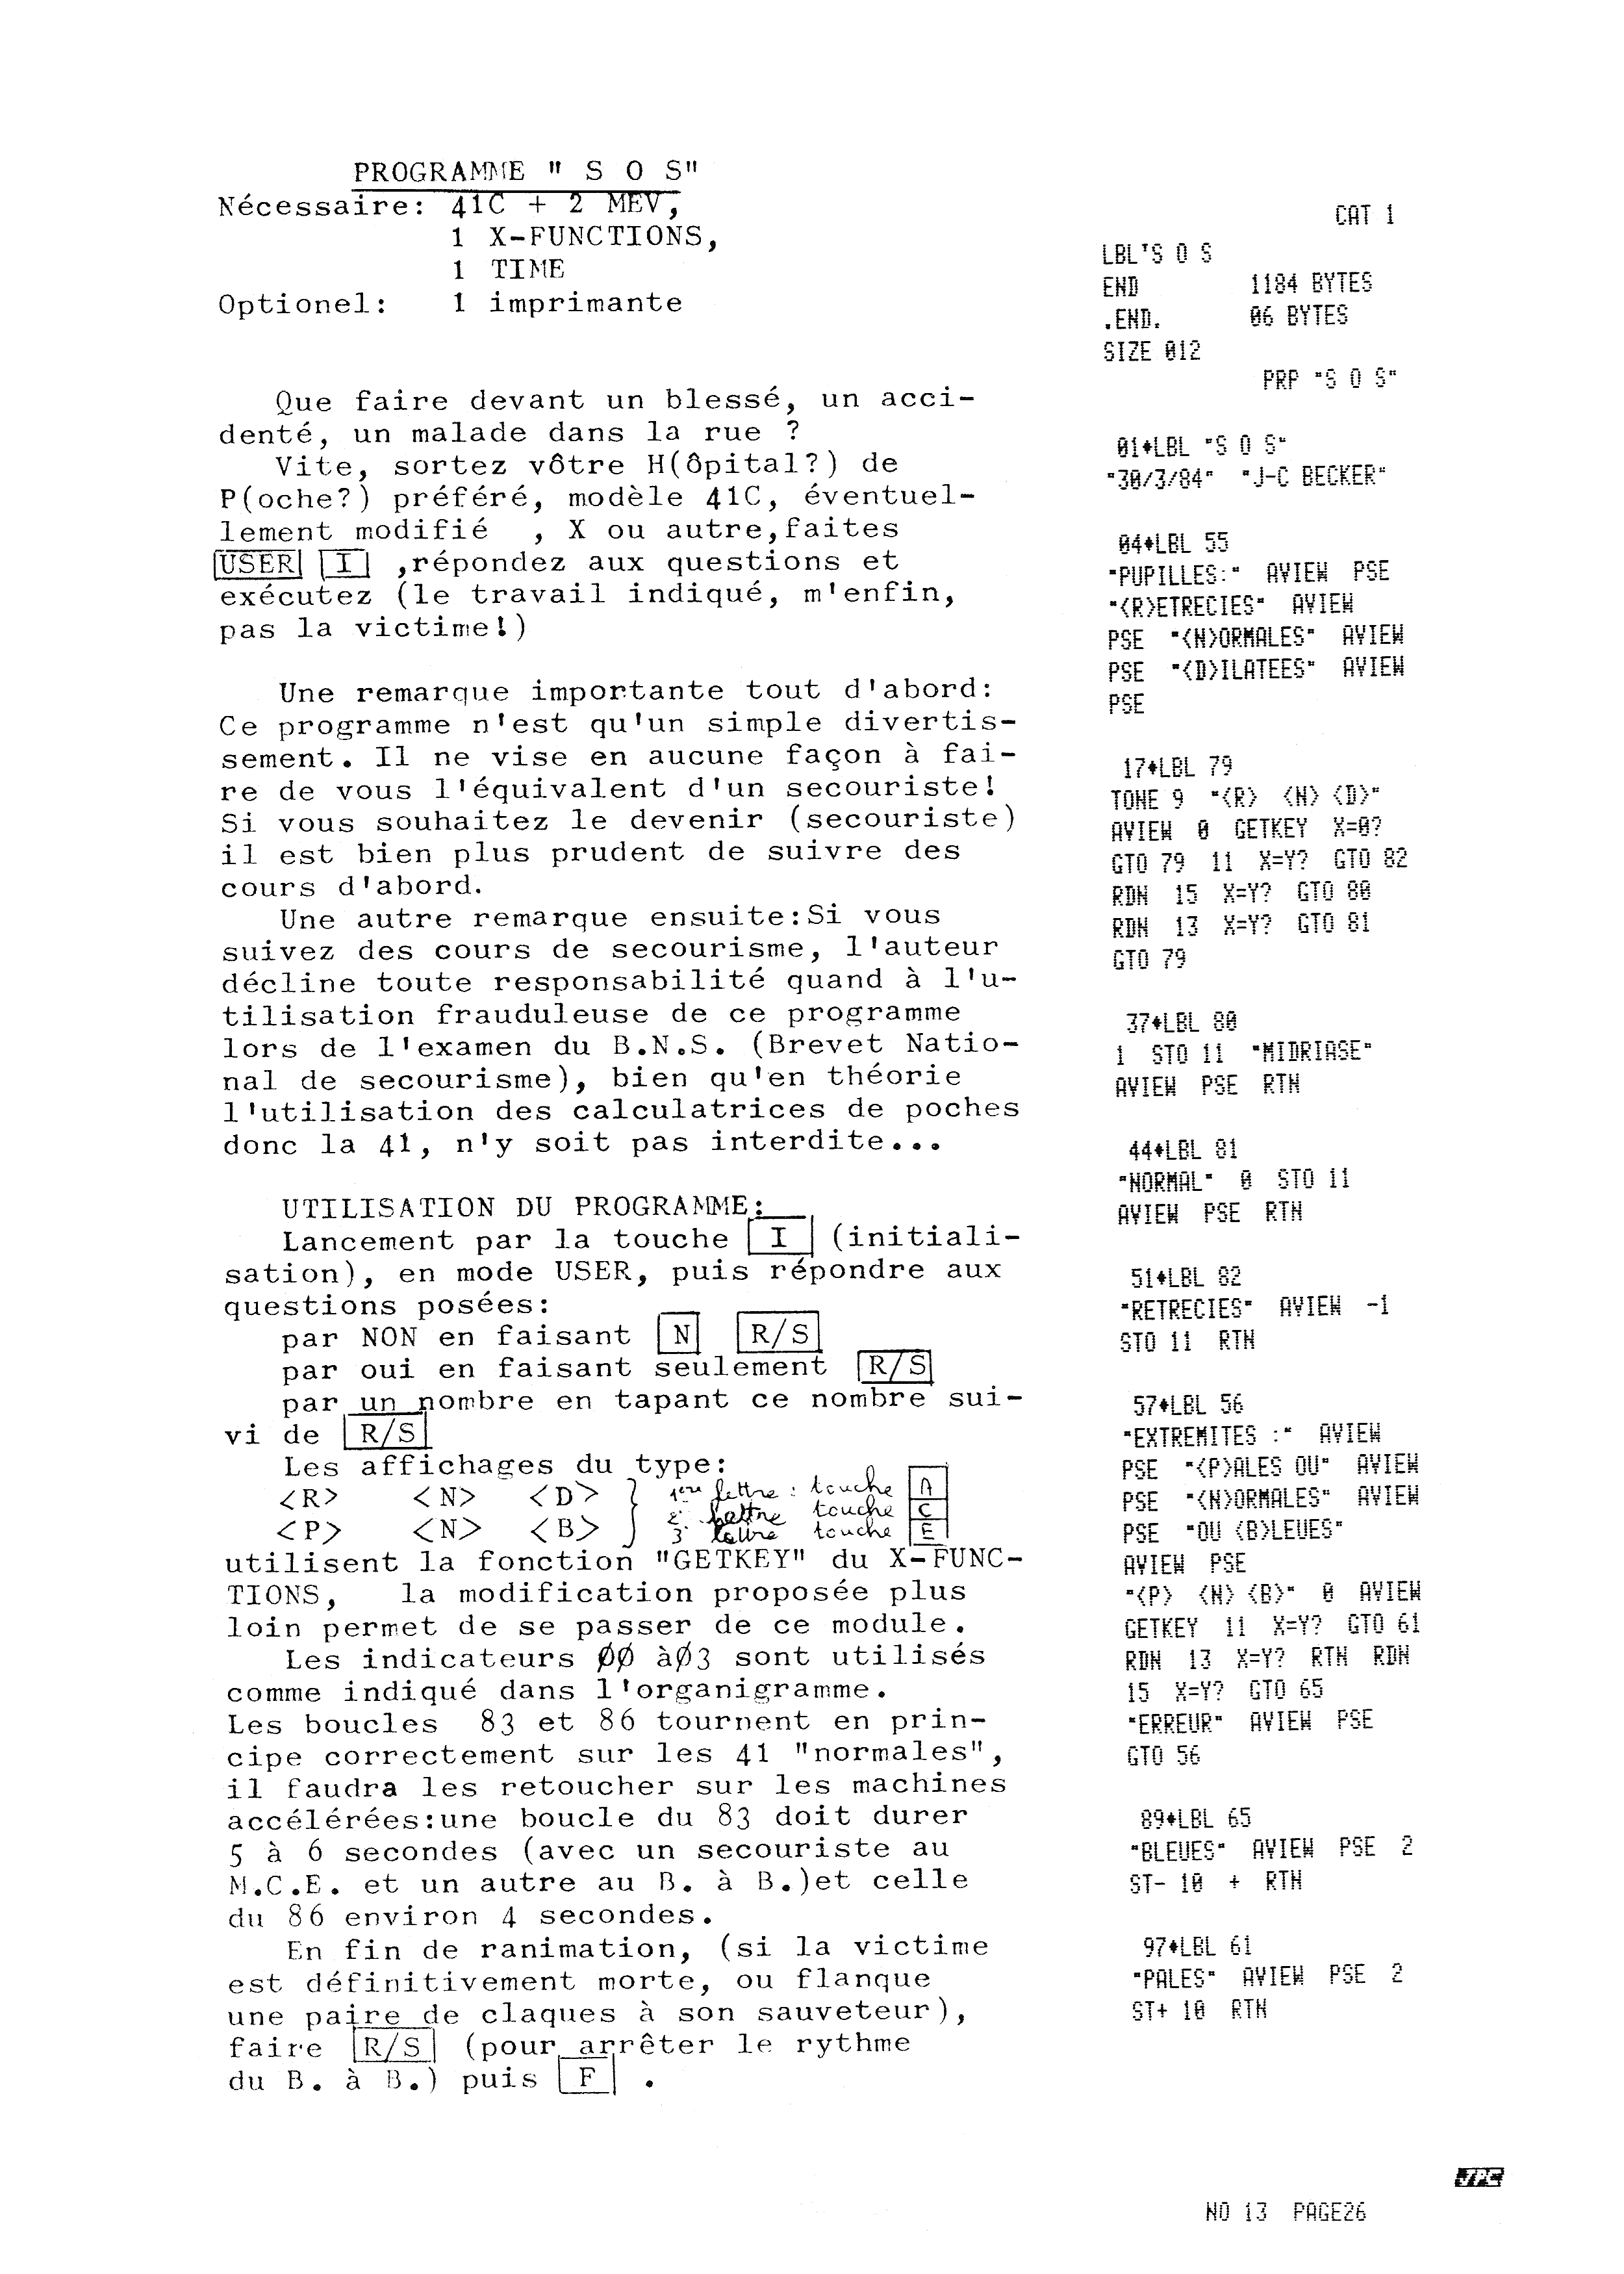 Jp-13-page-28-1000